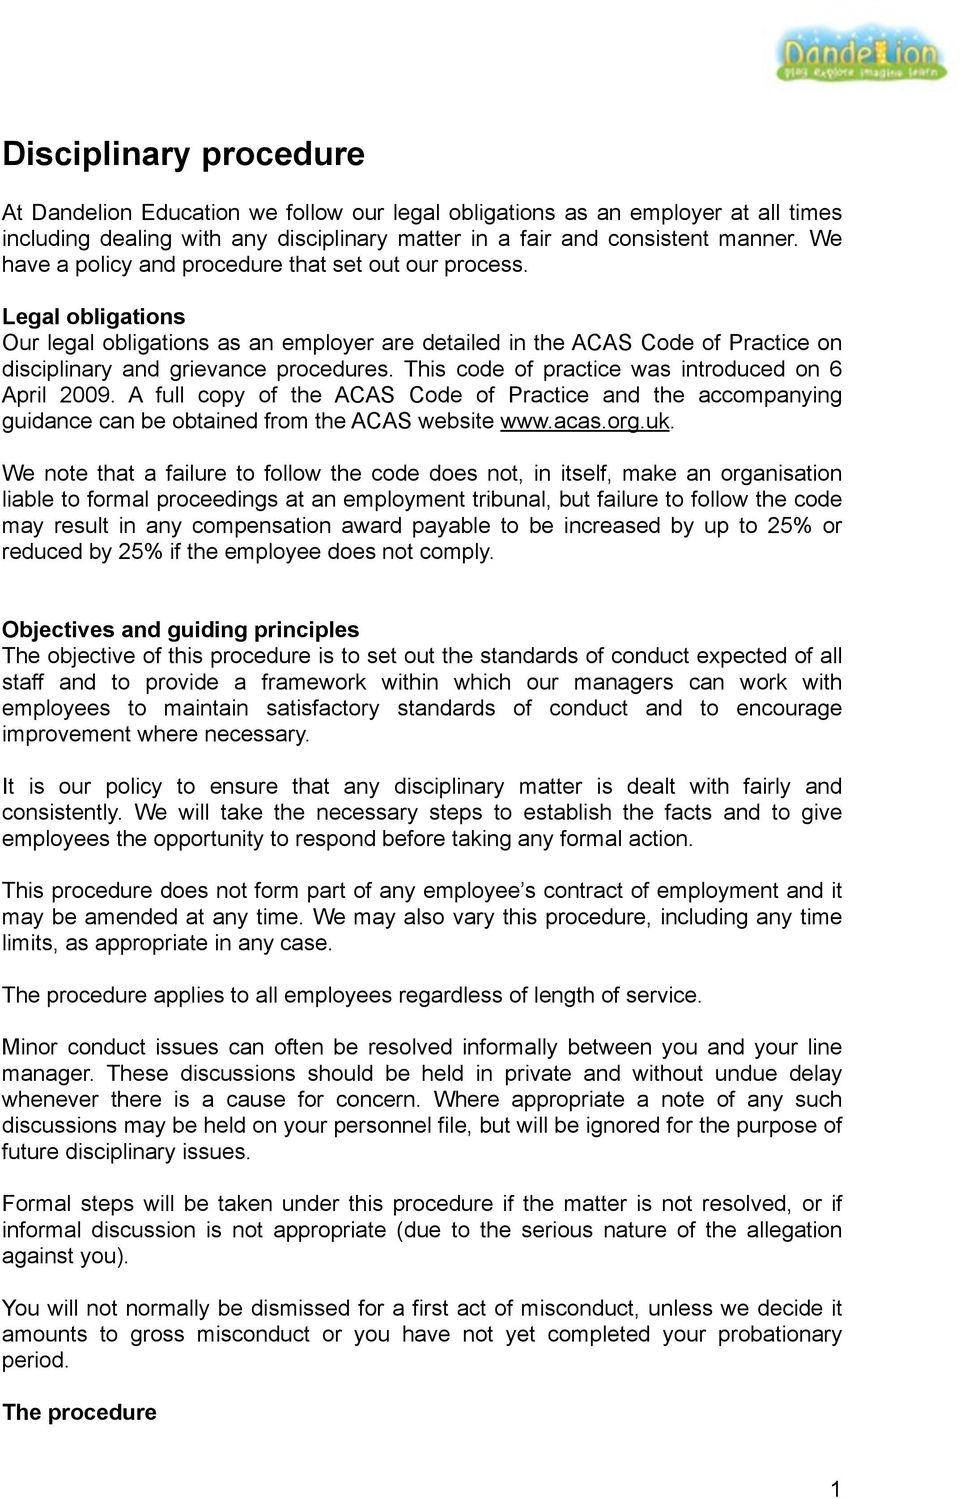 This code of practice was introduced on 6 April 2009. A full copy of the ACAS Code of Practice and the accompanying guidance can be obtained from the ACAS website www.acas.org.uk.